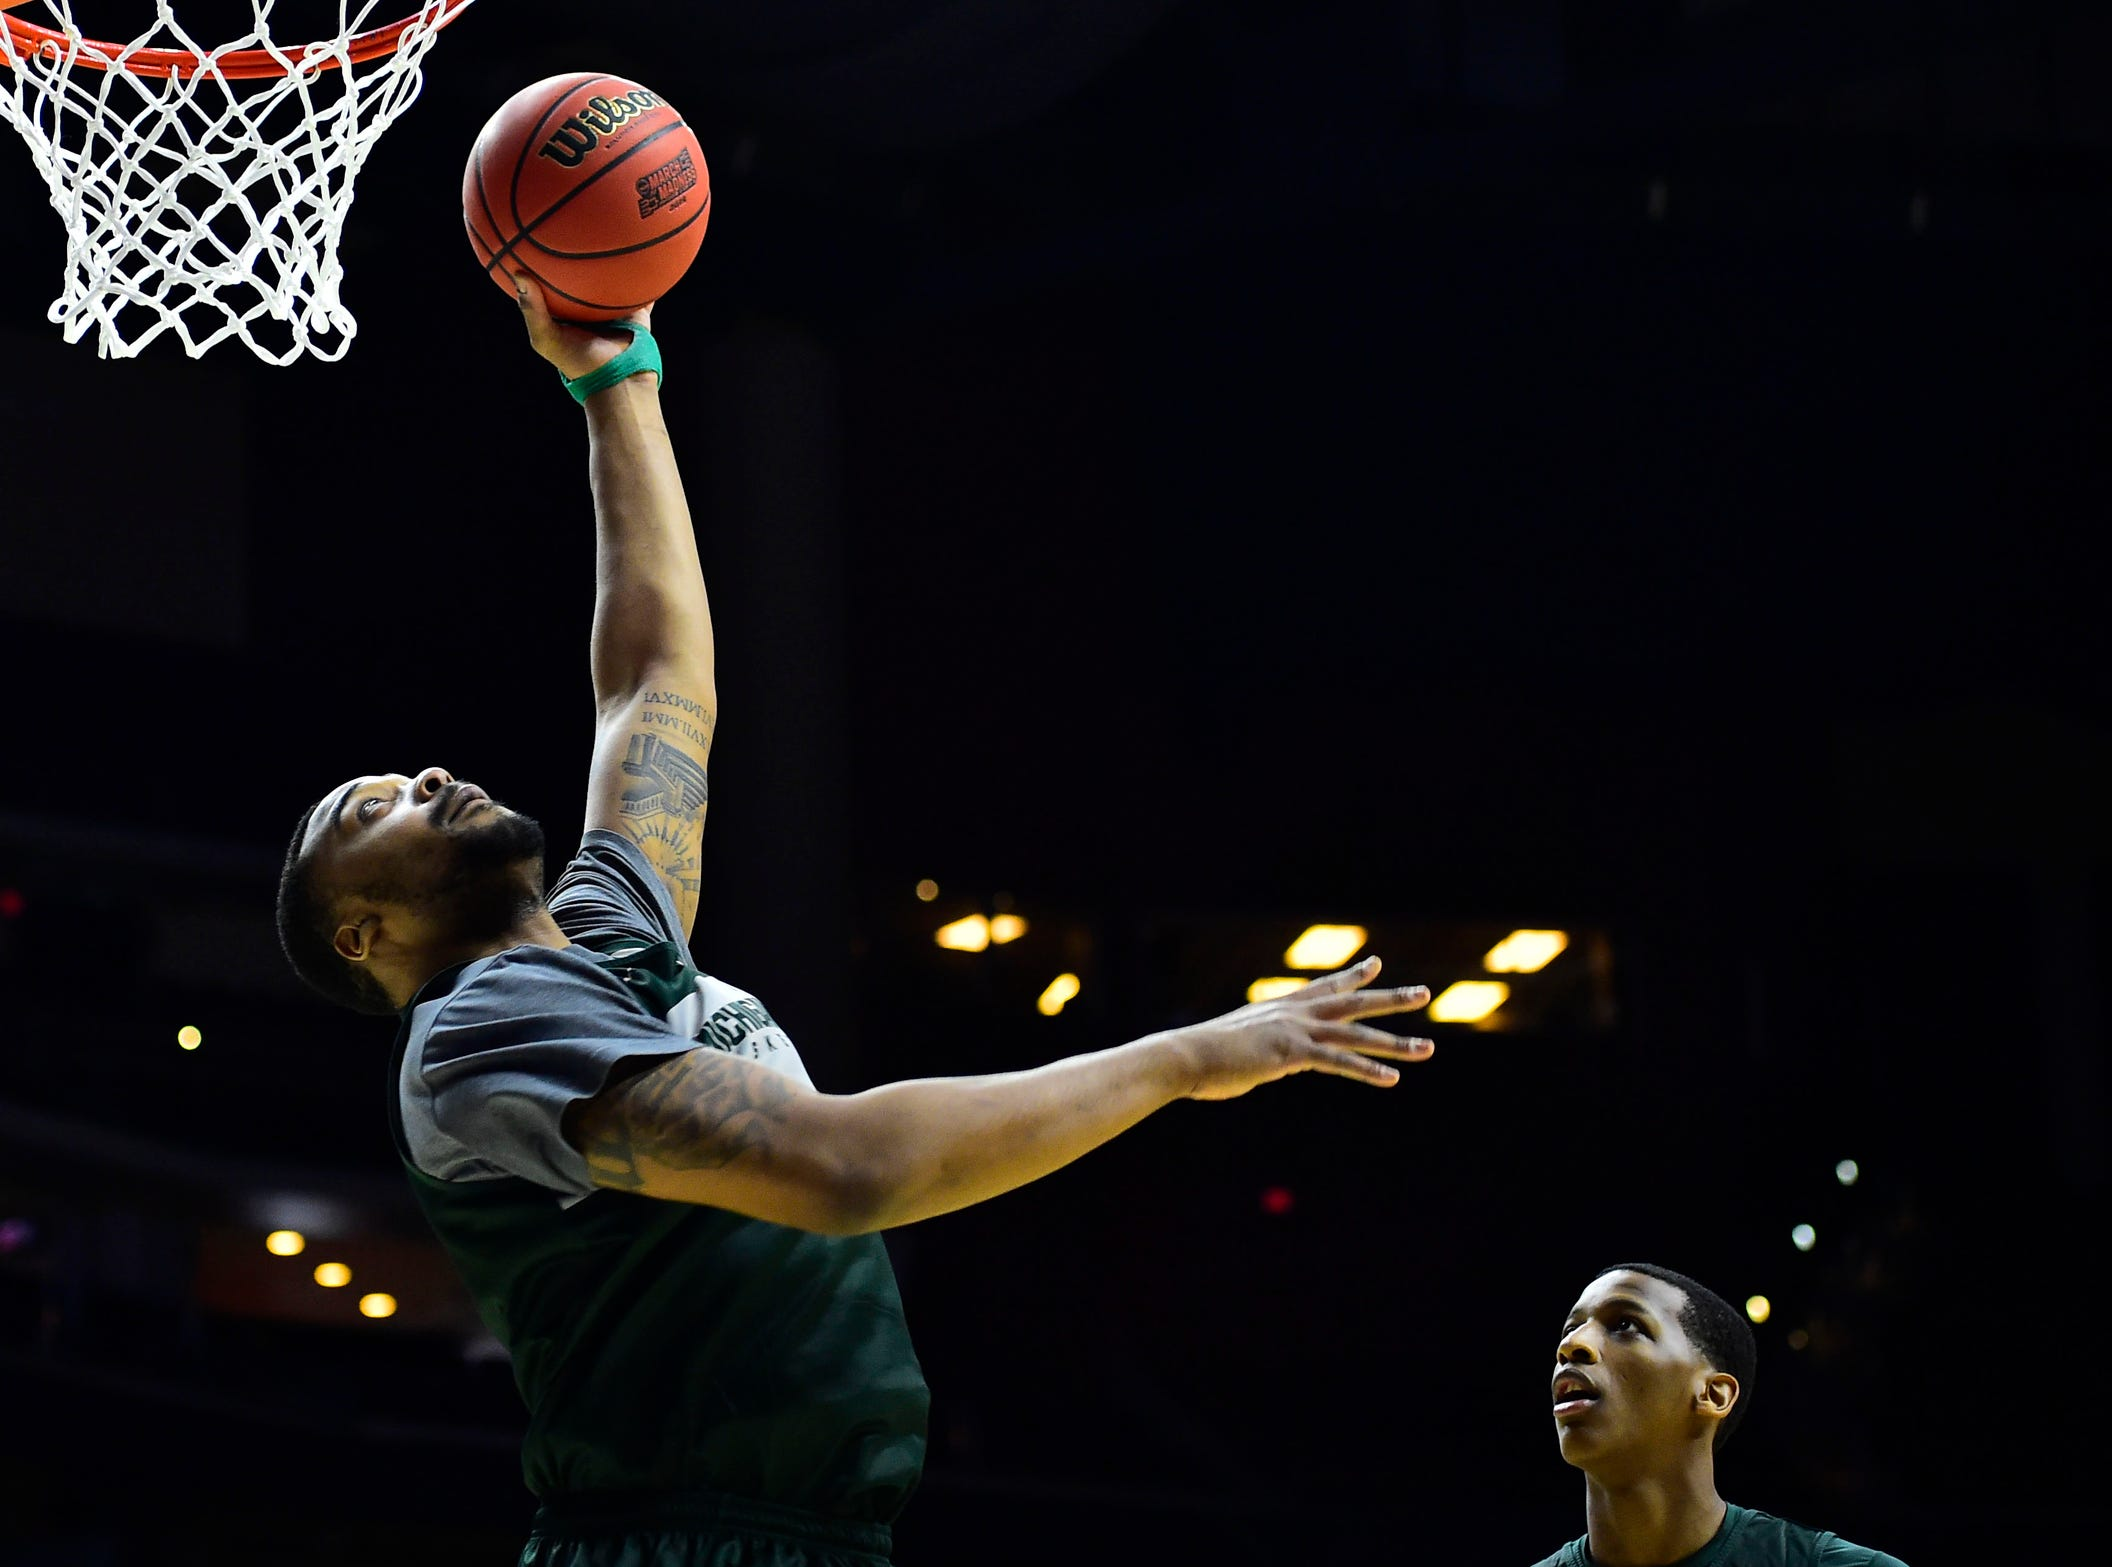 Mar 20, 2019; Des Moines, IA, USA; Michigan State Spartans forward Nick Ward (44) dunks the ball during practice before the first round of the 2019 NCAA Tournament at Wells Fargo Arena. Mandatory Credit: Steven Branscombe-USA TODAY Sports